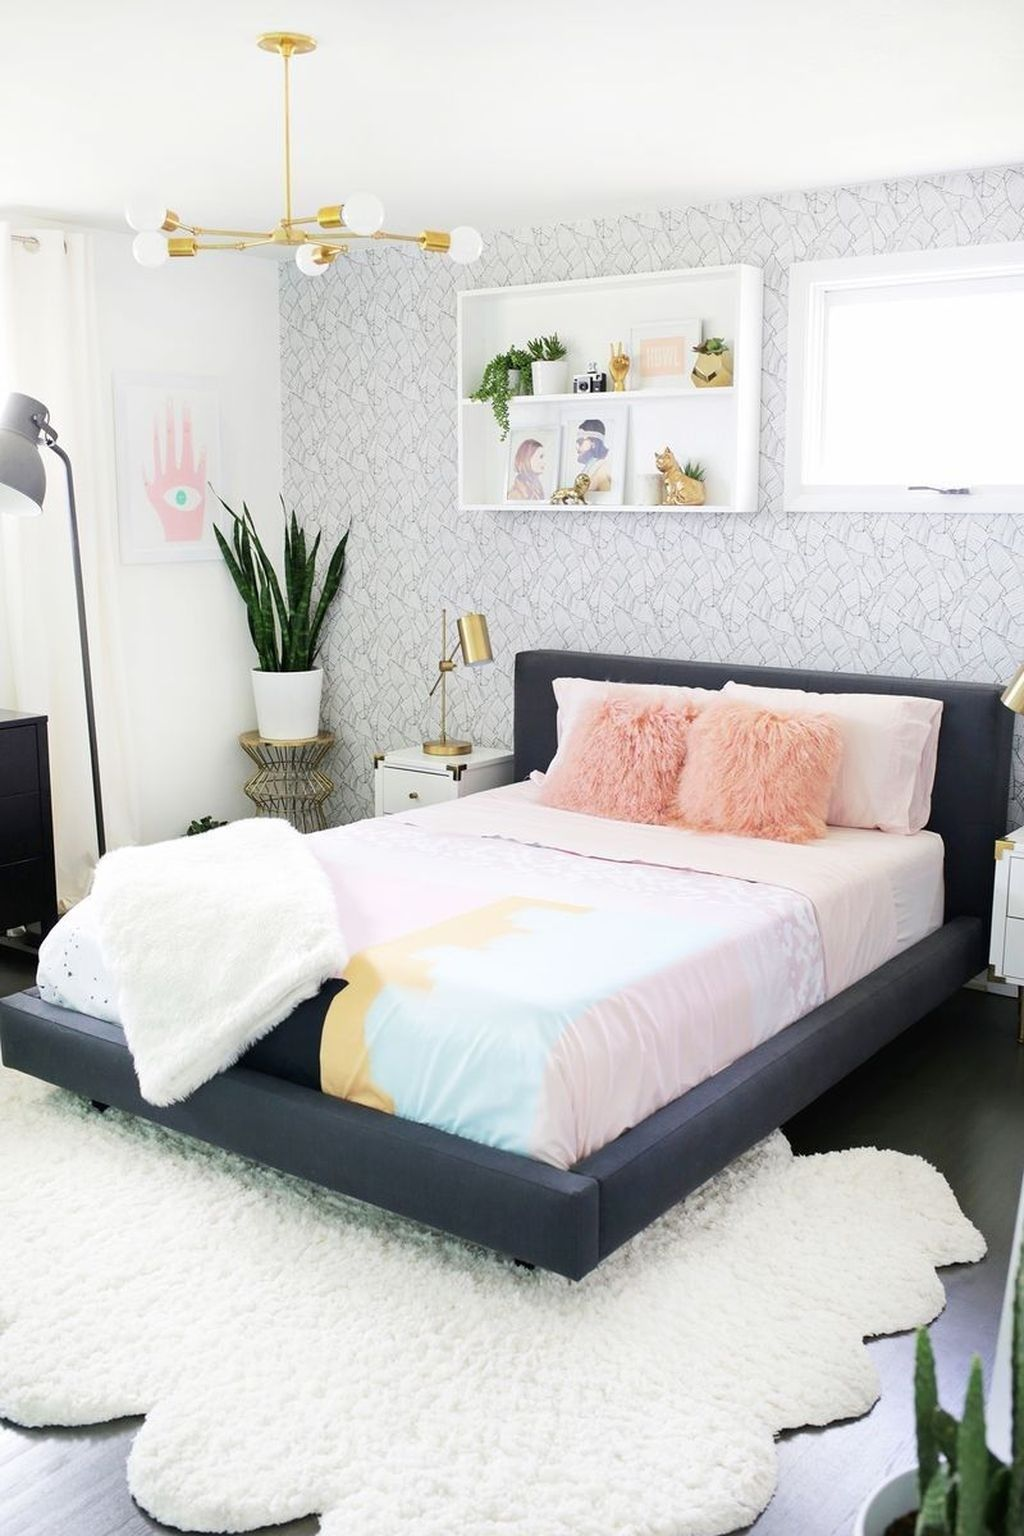 30+ nice pink tropical bedroom ideas fresh for summer